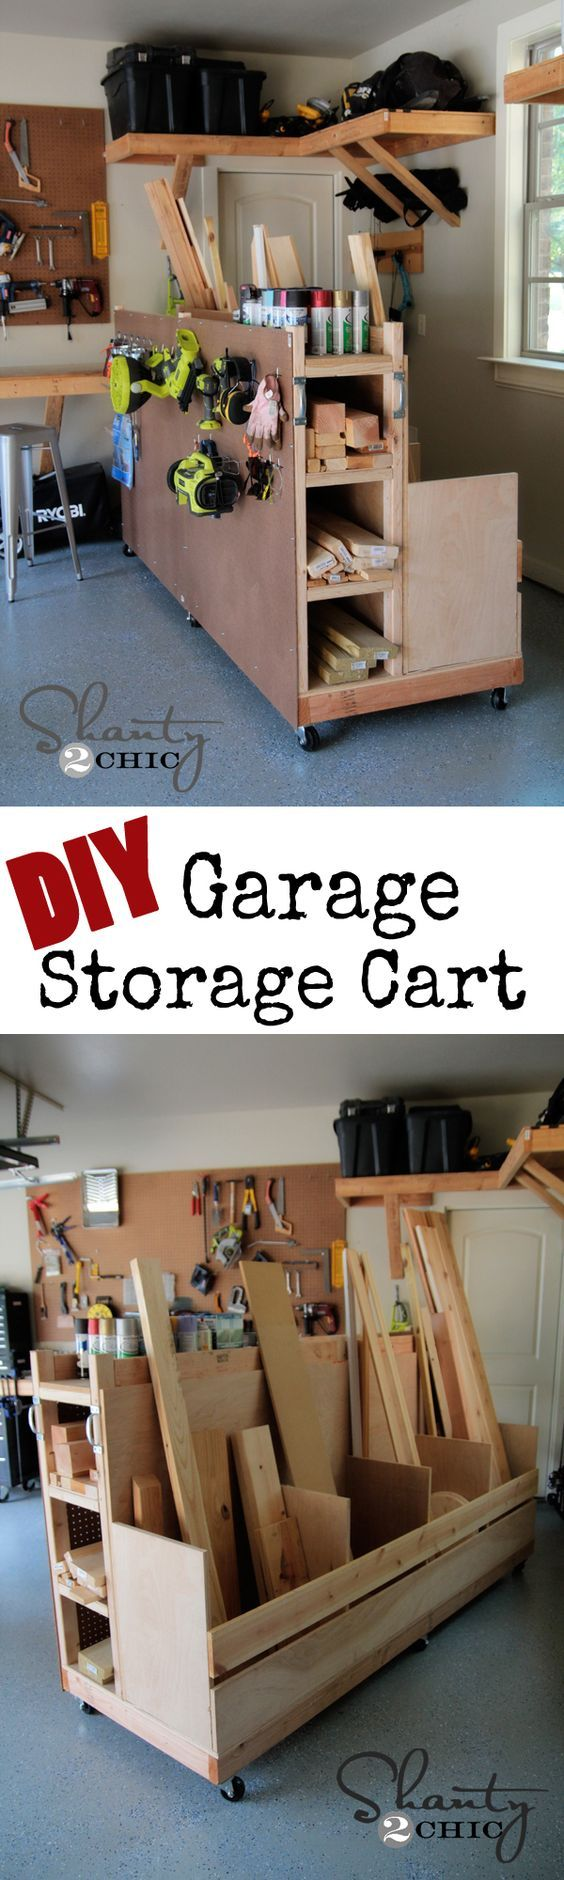 28 best garage images on pinterest woodworking tools and garage diy garage storage cart perfect to hold wood and all the goodies in your garage solutioingenieria Image collections